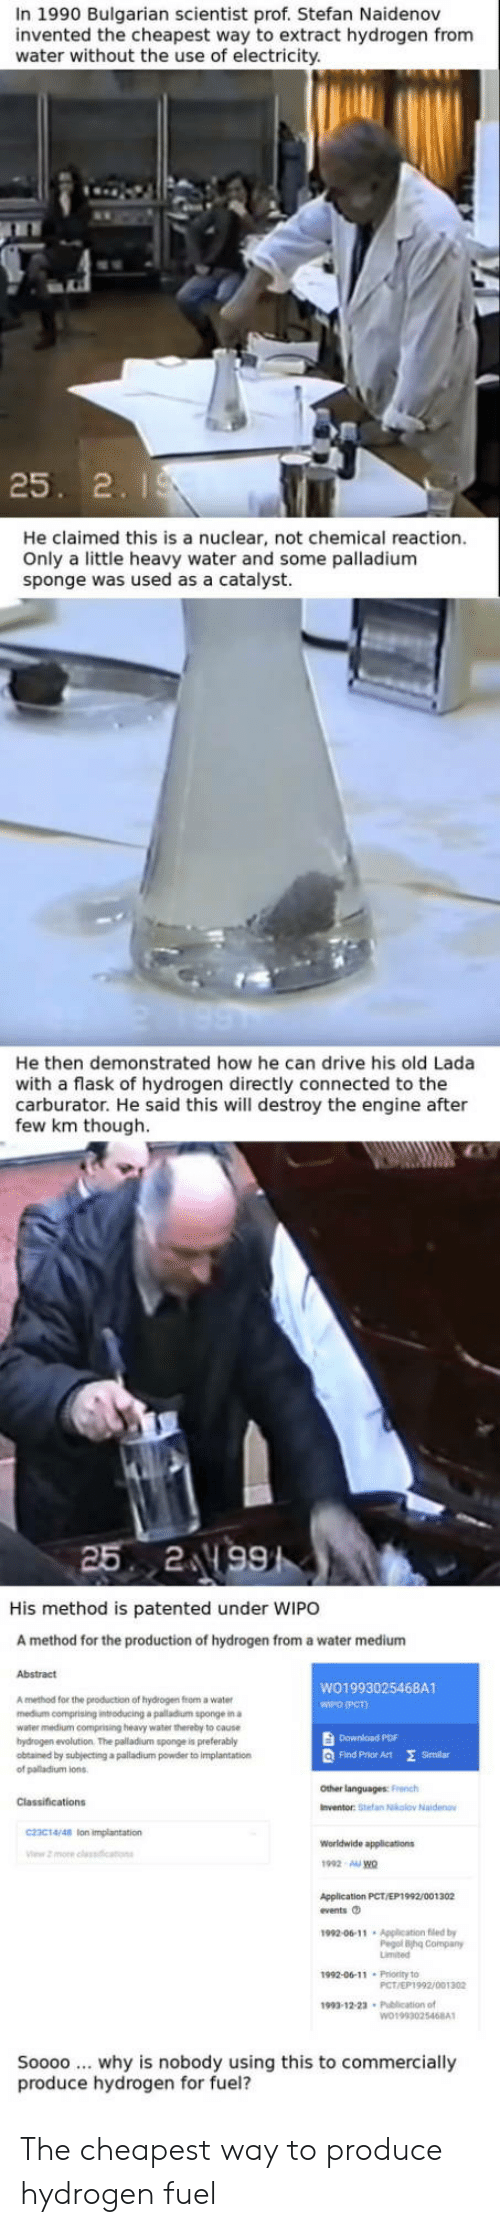 lon: In 1990 Bulgarian scientist prof. Stefan Naidenov  invented the cheapest way to extract hydrogen from  water without the use of electricity  25. 2. I  He claimed this is a nuclear, not chemical reaction.  Only a little heavy water and some palladium  sponge was used  as a catalyst.  He then demonstrated how he can drive his old Lada  with a flask of hydrogen directly connected to the  carburator. He said this will destroy the engine after  few km though  His method is patented under WIPO  A method for the production of hydrogen from a water medium  Abstract  WO1993025468A1  WIPO (PCT)  A method for the production of hydrogen from a water  medium comprising introducing a palladium sponge in a  water medium comprising heavy water thereby to eause  hydrogen evolution. The palladium sponge is preterably  obtained by subjecting a palladium powder to implantation  of palladium ions  Download PDF  Q Find Prhor Art E  Similan  Other languages: French  Inventor: Stefan Nkolov Naide  C23C14/48 lon impiantation  1992 AU wo  Application PCT/EP1992/001302  fvents O  1992-06-11 Application fled by  Pegol ihg Company  1992-00-11 Prority to  PCT/EP1992/001302  1993-12-23 Publication of  Soooo why is nobody using this to commercially  produce hydrogen for fuel? The cheapest way to produce hydrogen fuel